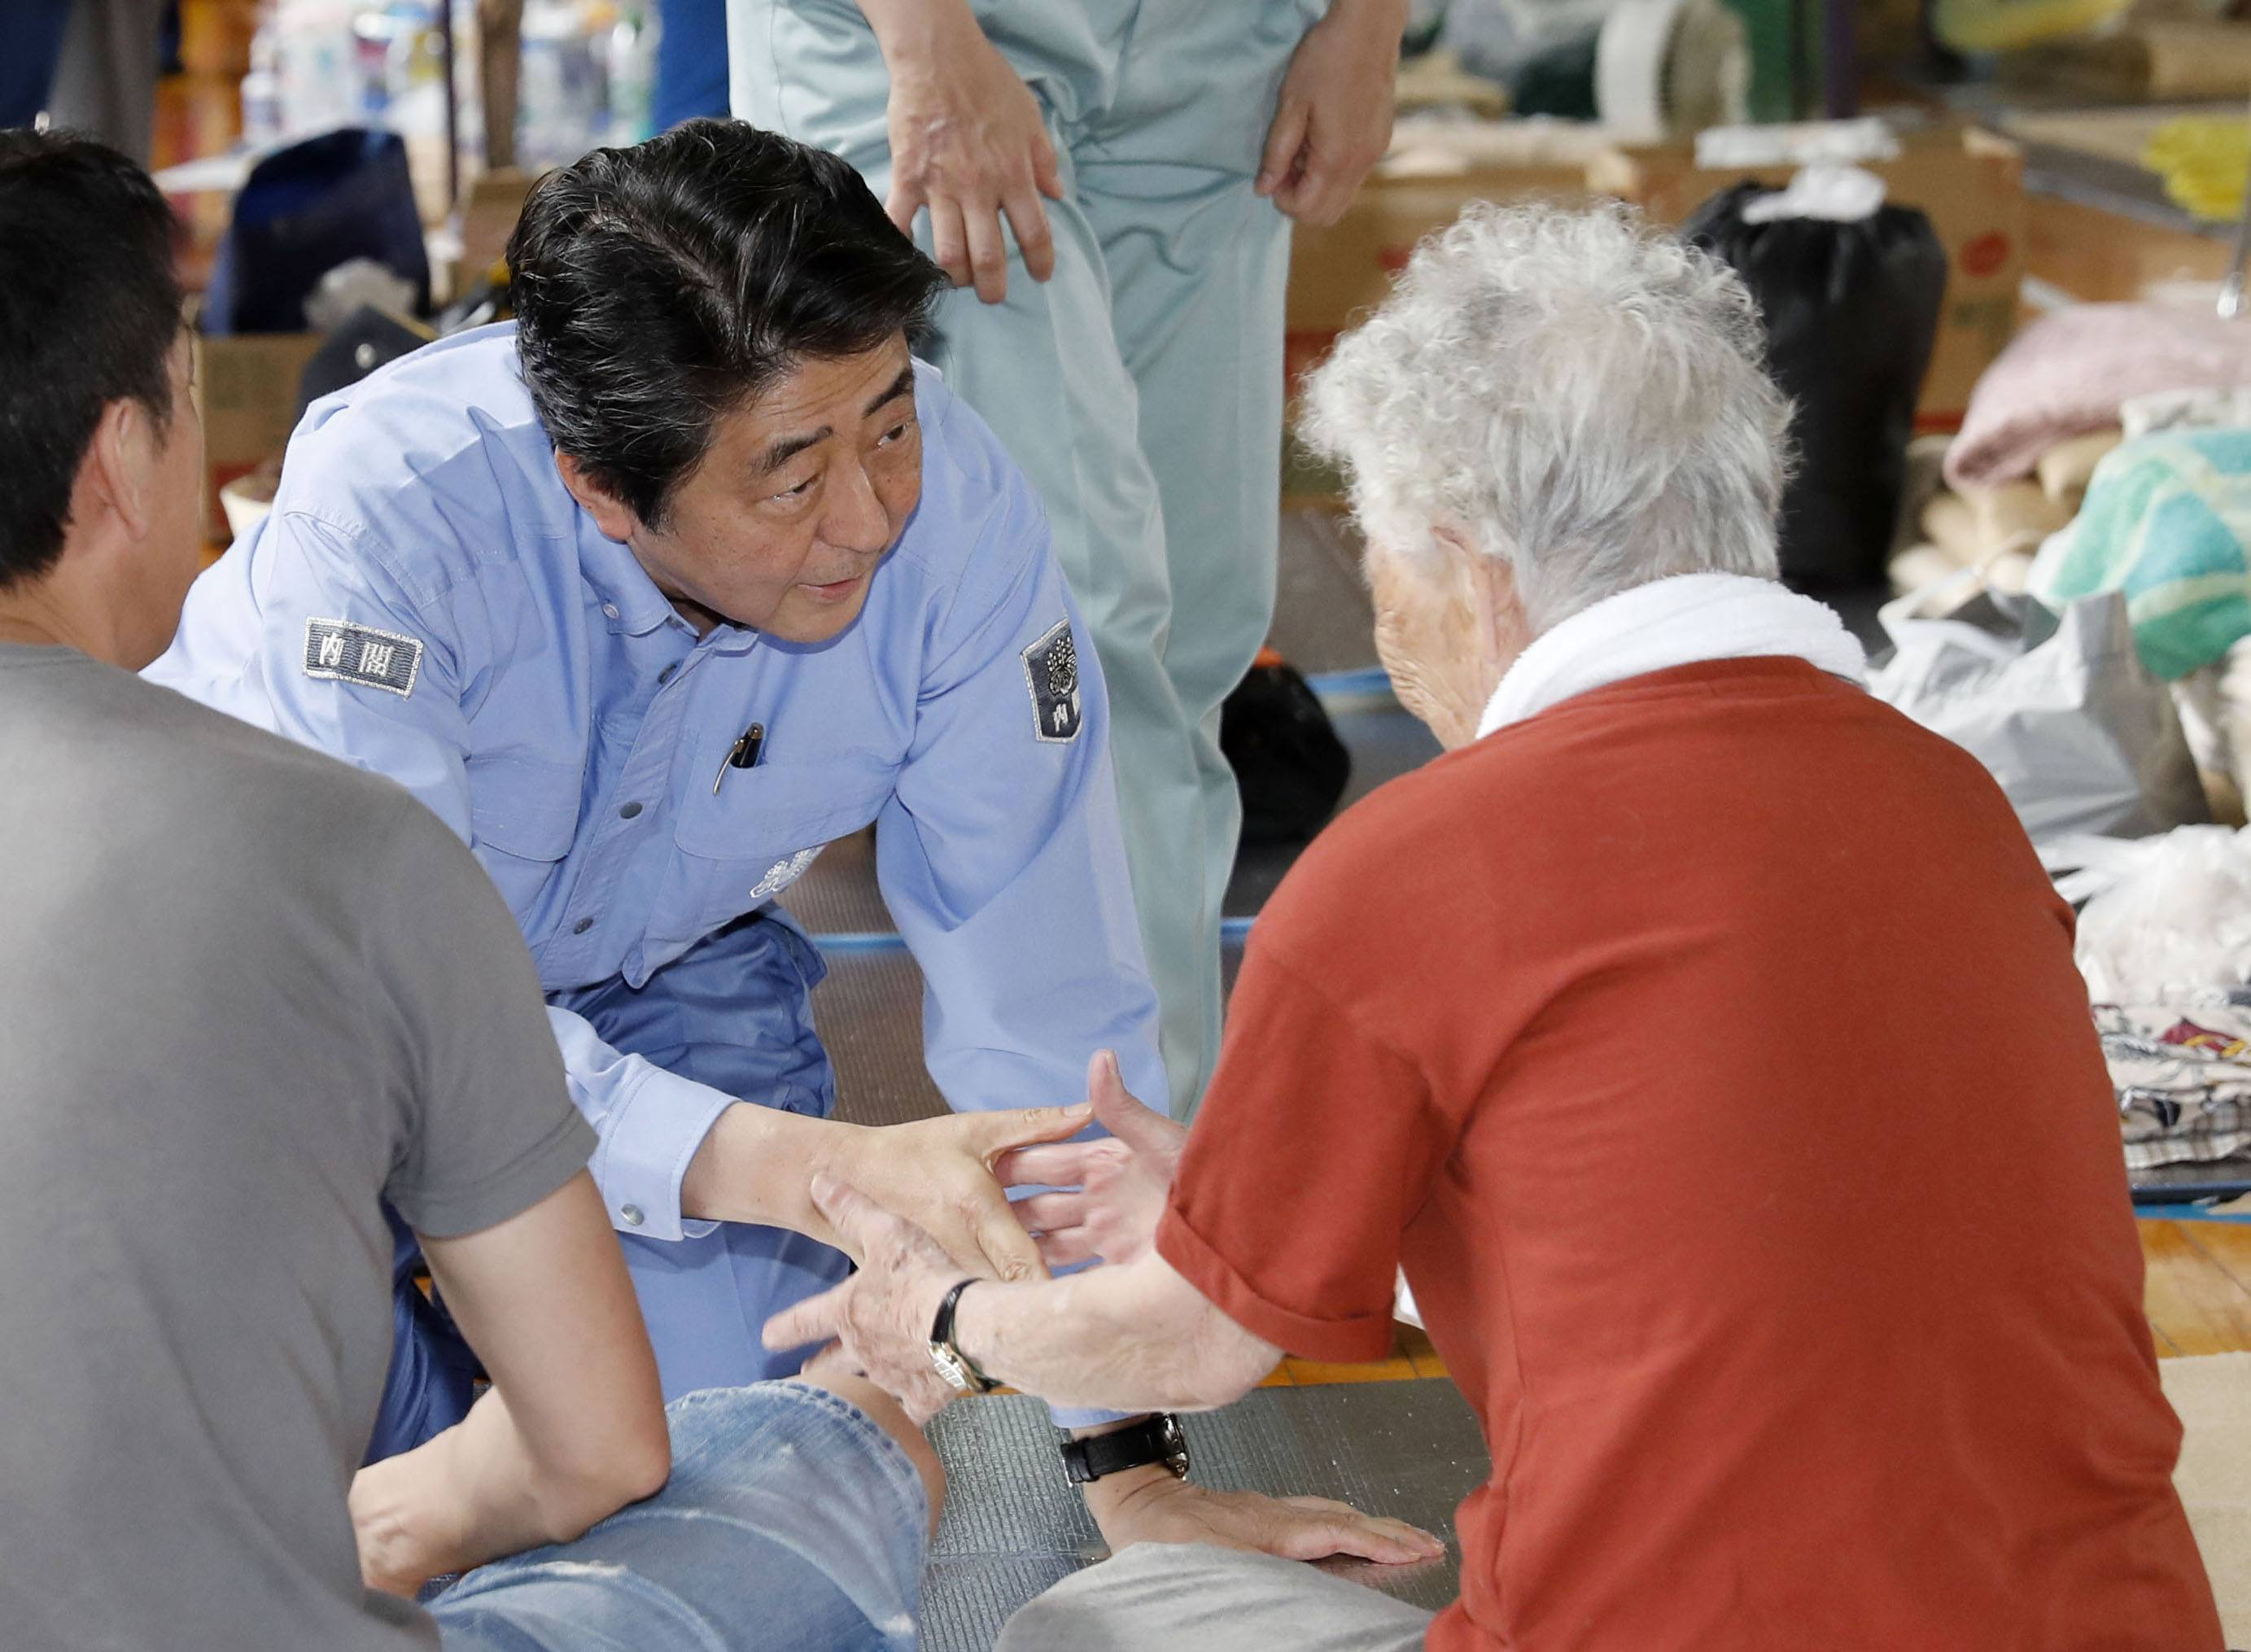 Japanese Prime Minister Shinzo Abe listens to an evacuee during a visit to an evacuation center in Kurashiki, Okayama prefecture, southwestern Japan, Wednesday, July 11, 2018. Abe visited the hard-hit city where a river broke through an embankment and swept through residential areas. (Shohei Miyano/Kyodo News via AP)